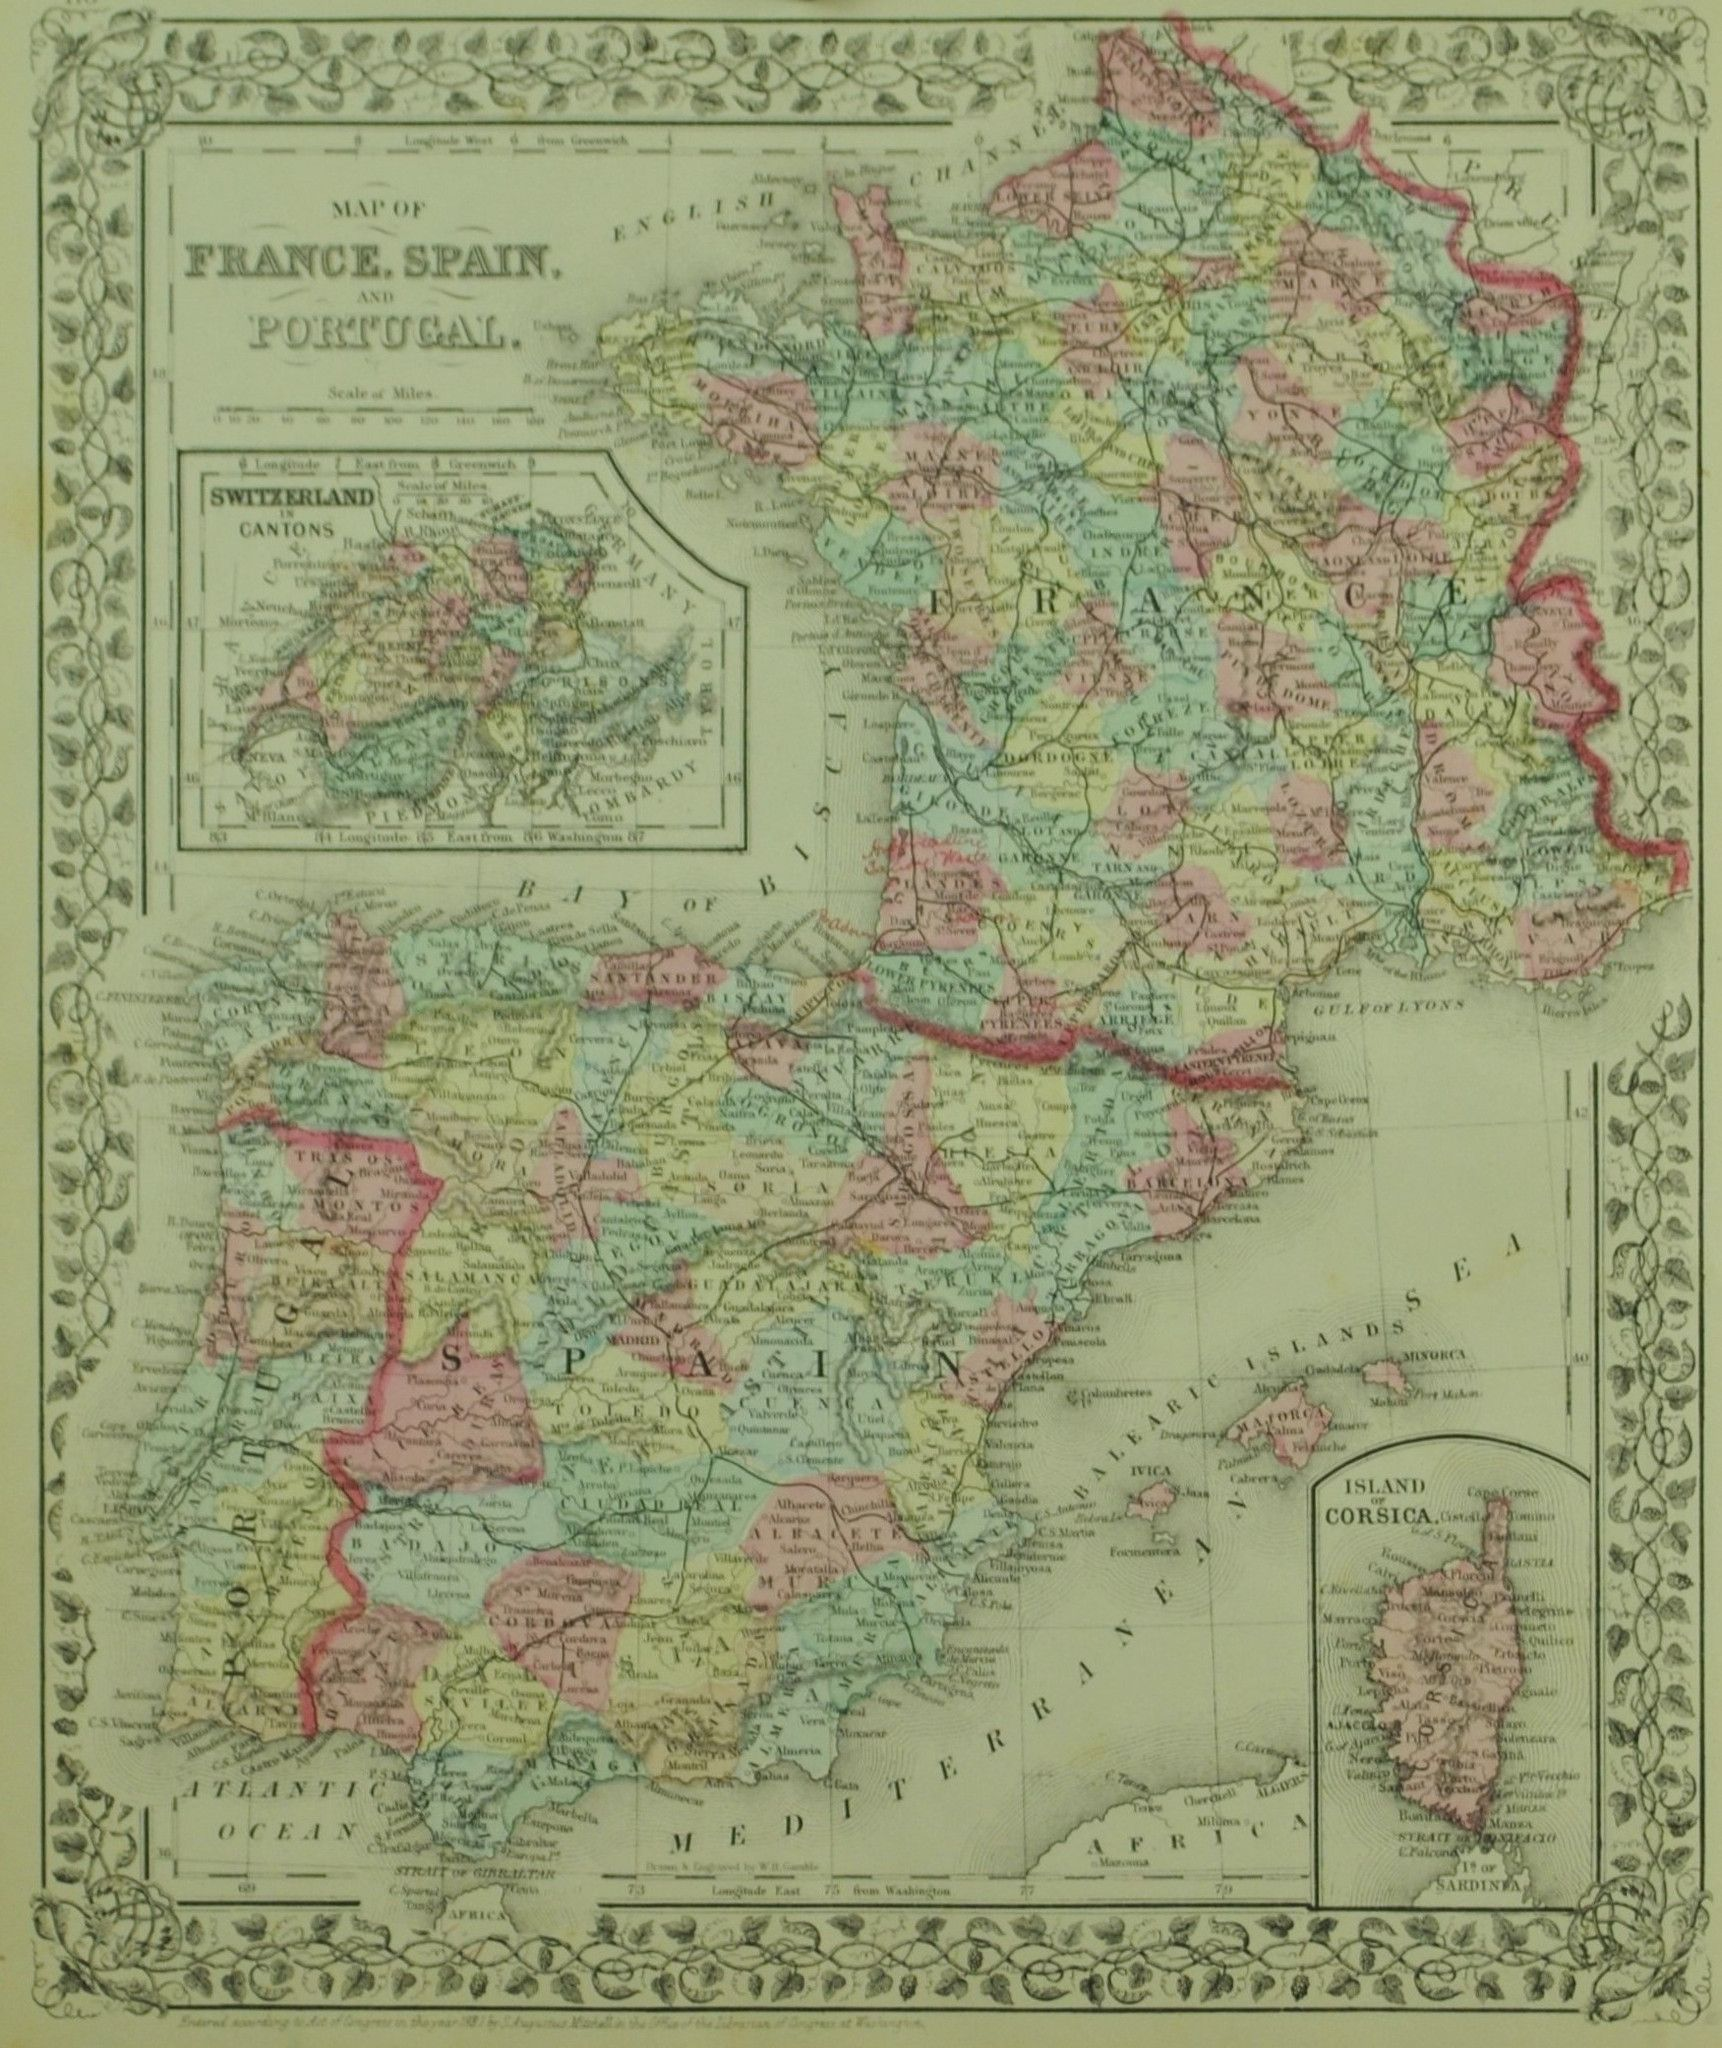 Map Of Spain And Portugal And France.1881 Map Of France Spain And Portugal S Mitchell Jr Close To My